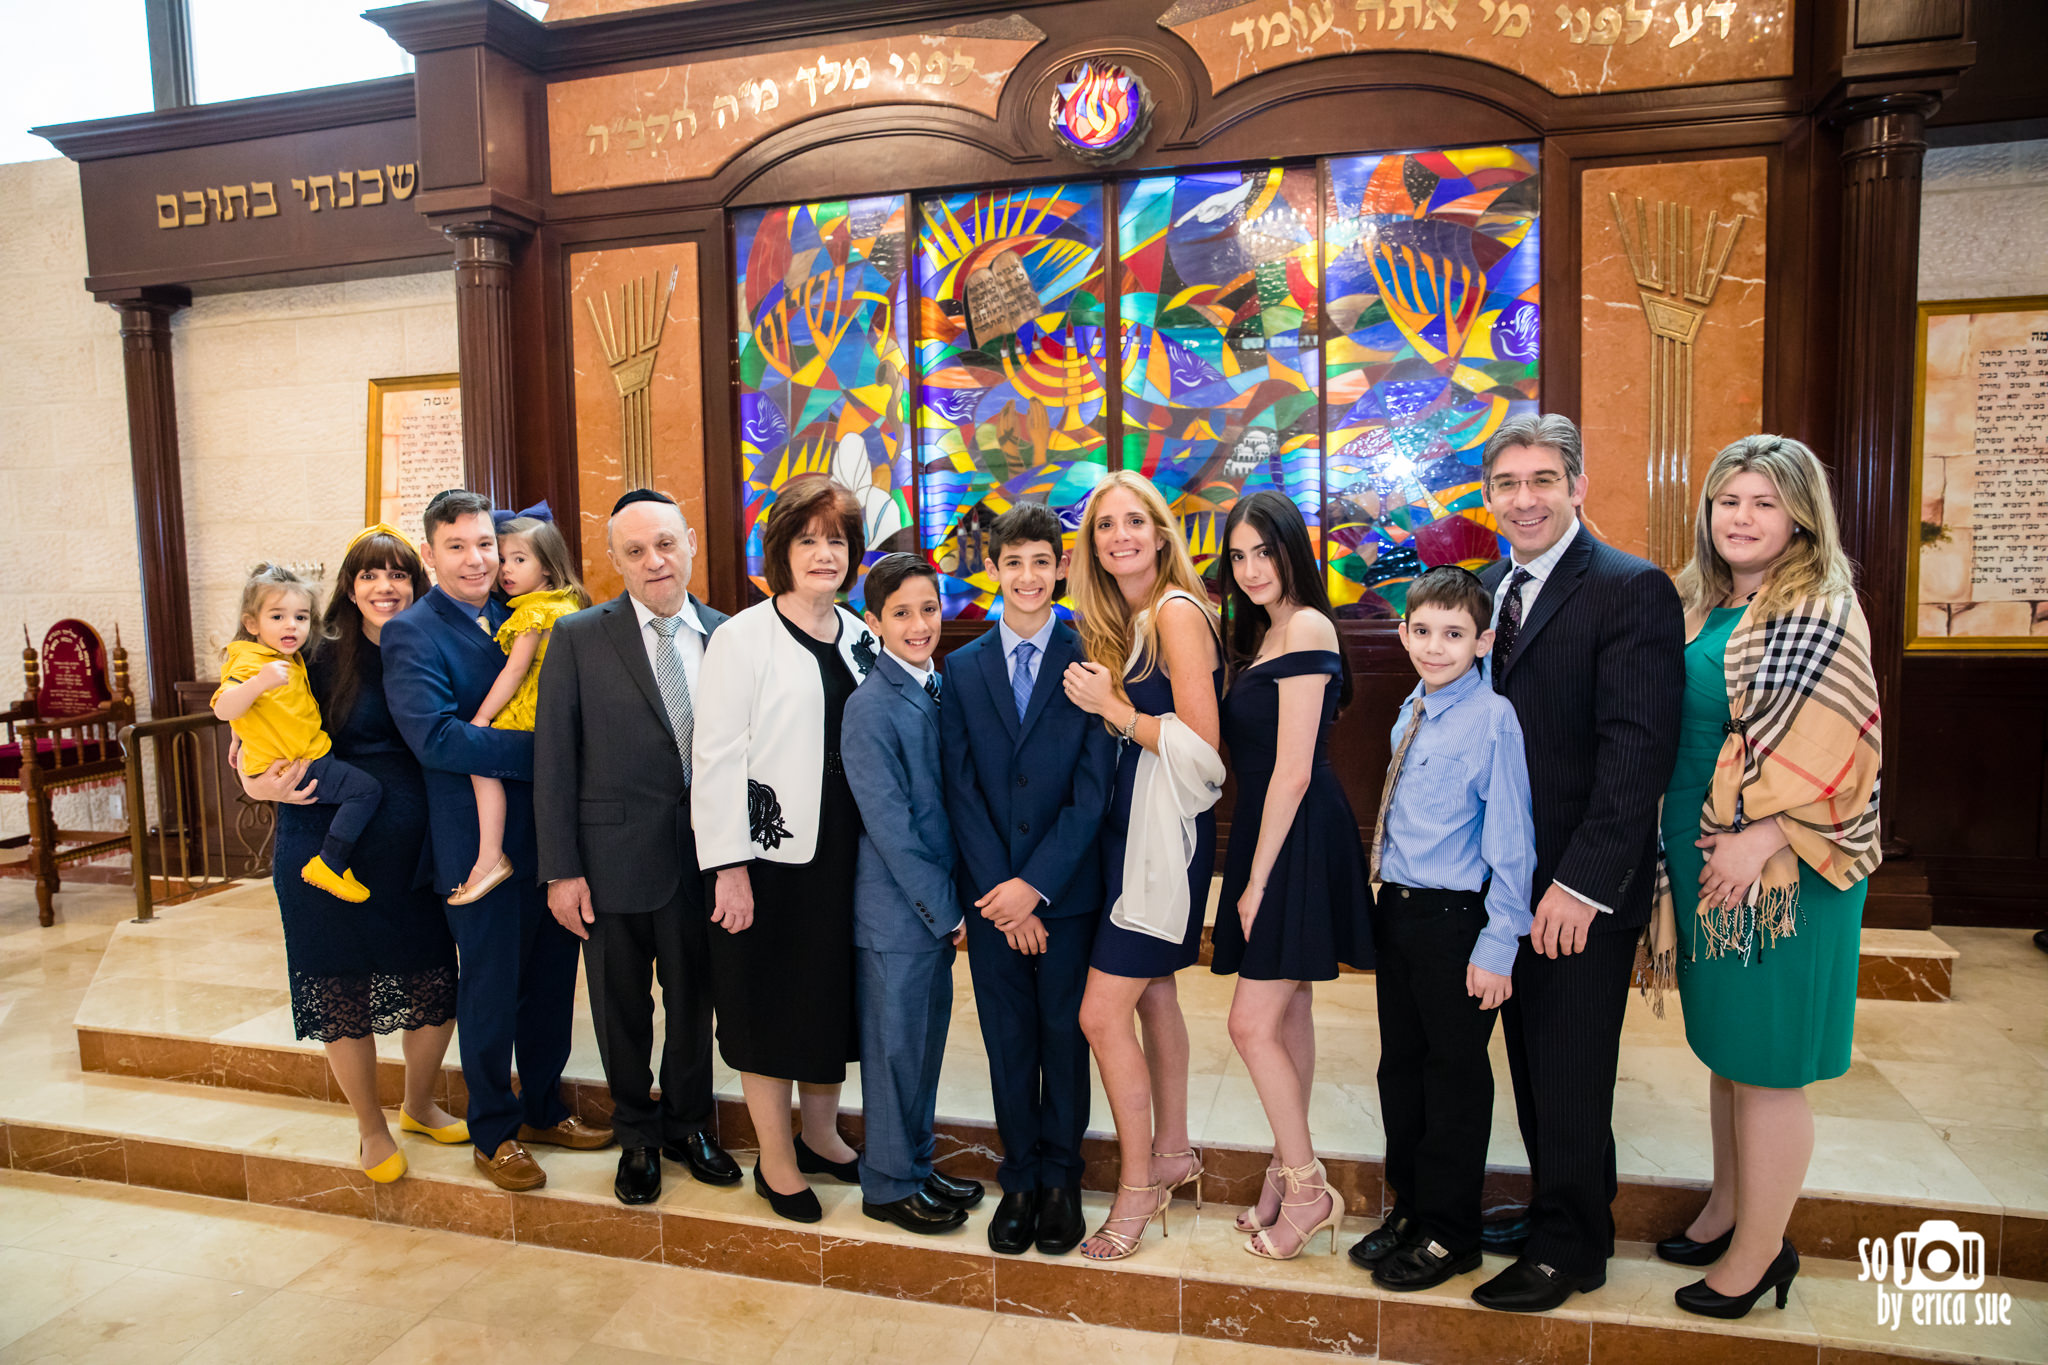 so-you-by-erica-sue-mitzvah-bnai-sephardim-hollywood-one-event-place-kosher-caterer-0367.jpg